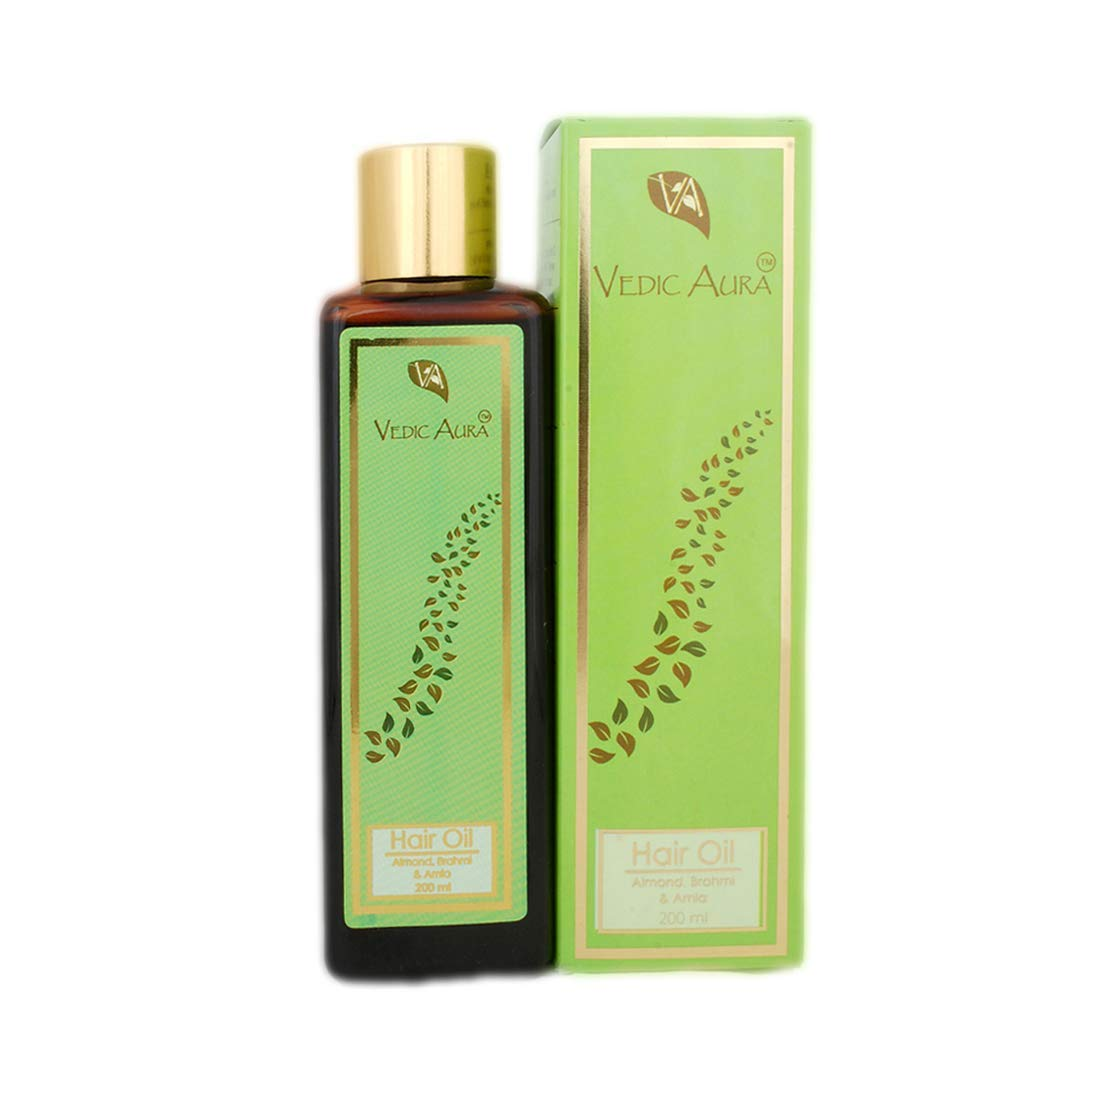 Buy Vedic Aura Hair Oil Online At Low Prices In India Amazon In